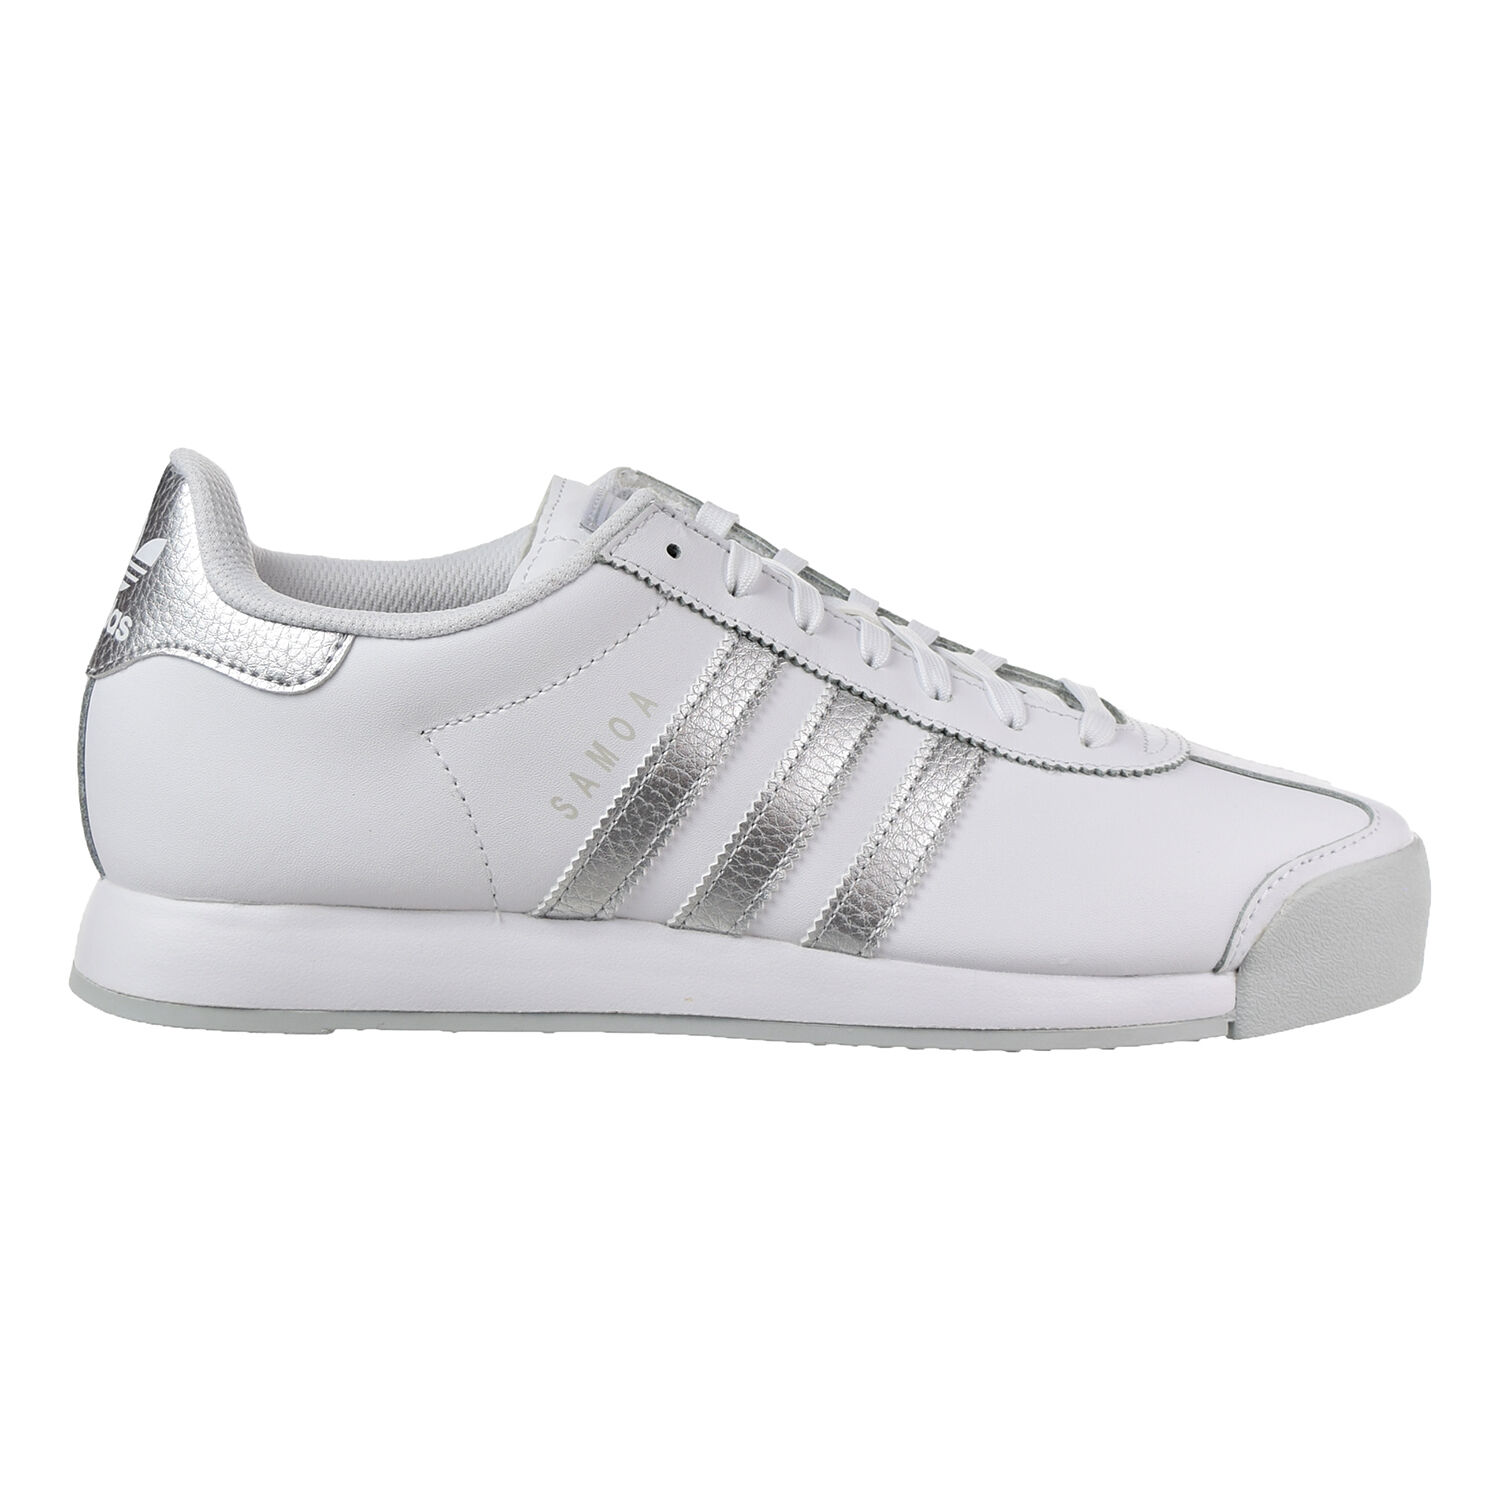 Adidas Samoa Men's Shoes White/Gold Metallic/Grey aq7906